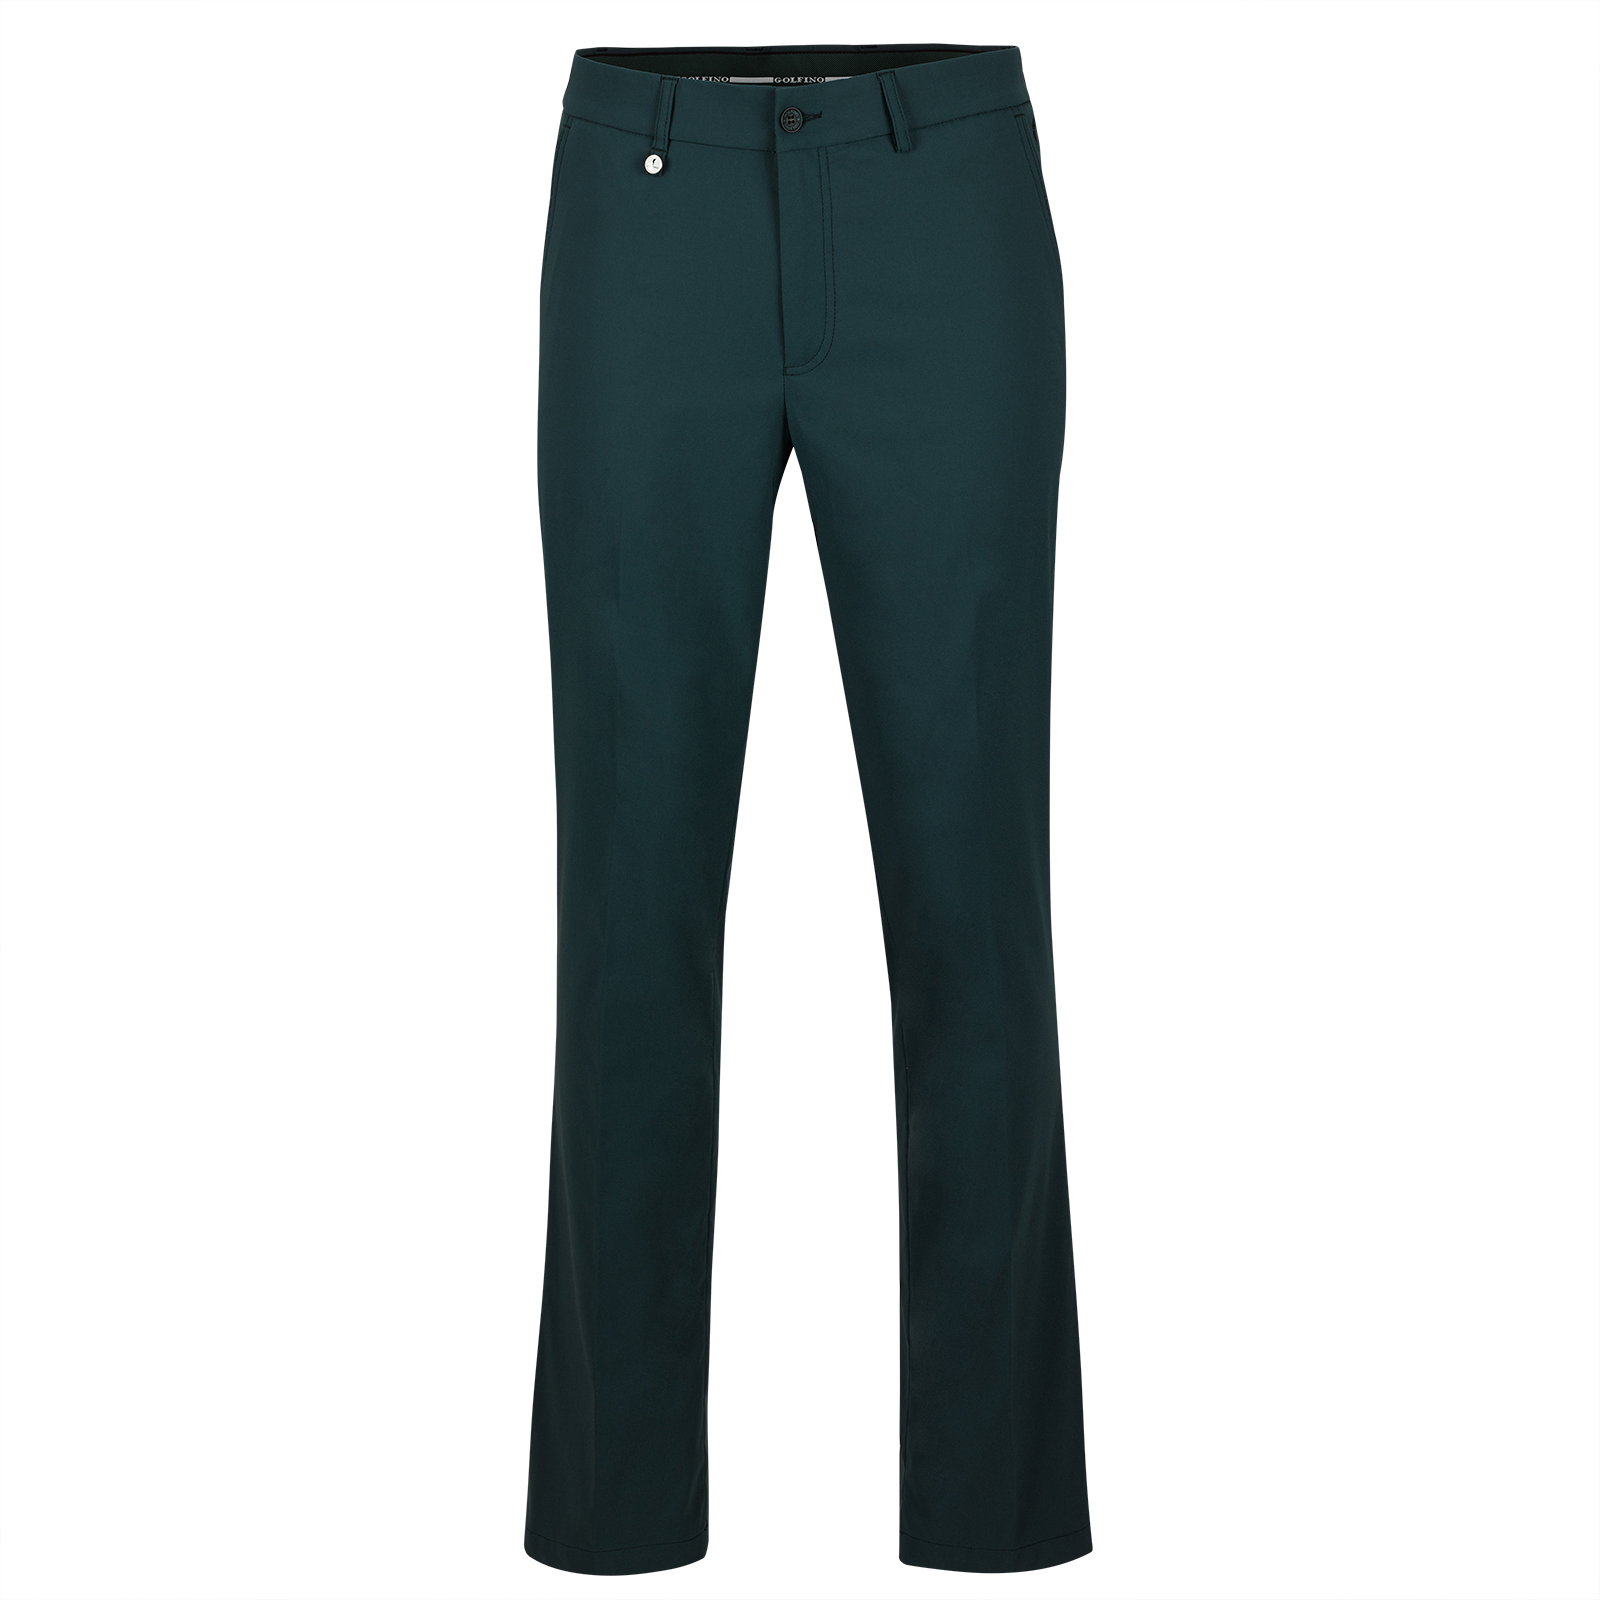 Men's techno stretch golf trousers with Cold Protection function in regular fit